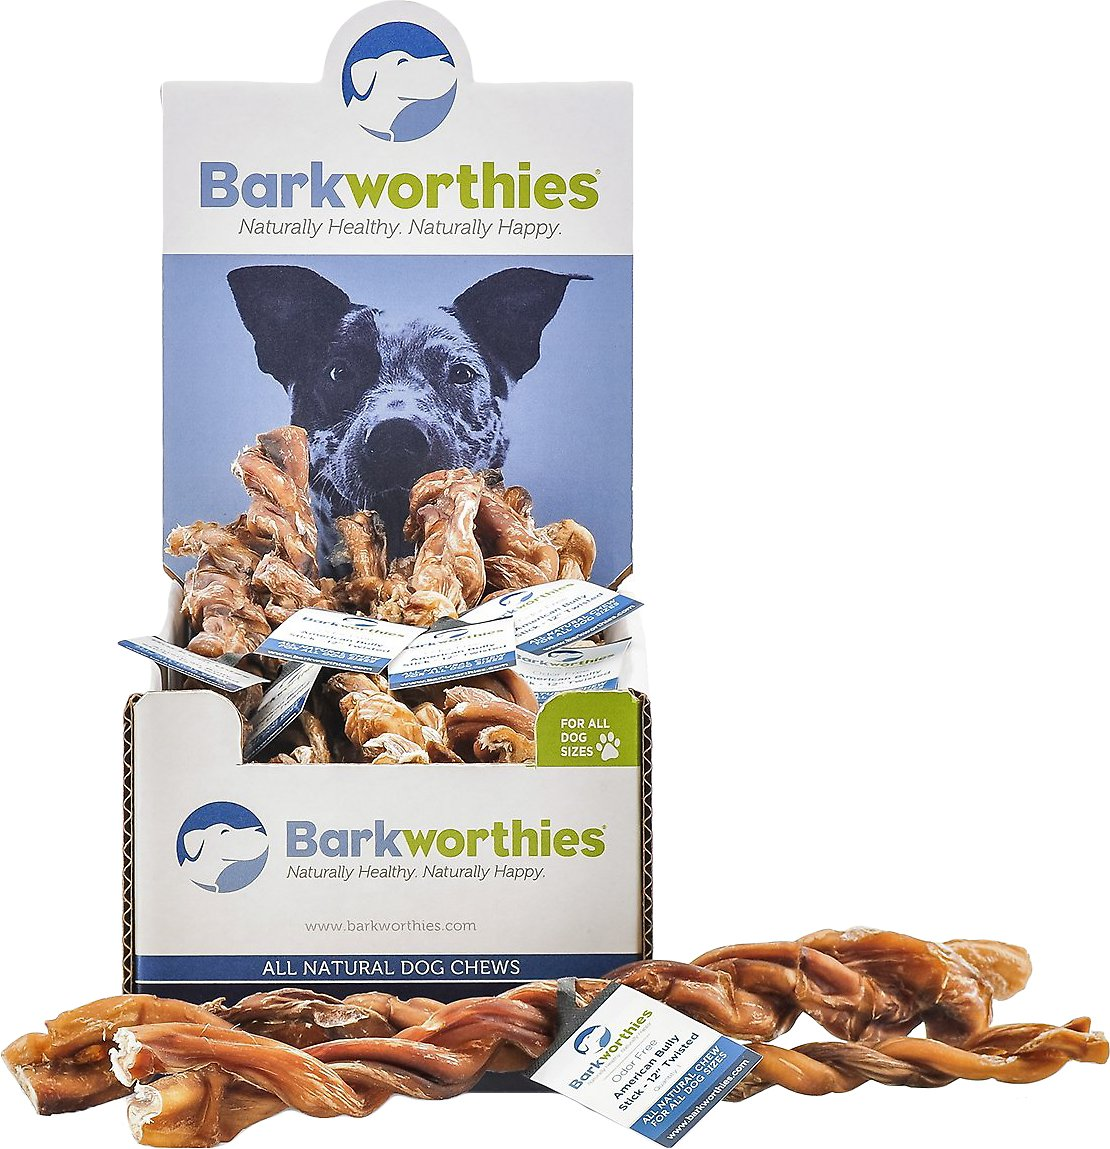 barkworthies odor free american twisted 12 bully sticks dog treats case of 20. Black Bedroom Furniture Sets. Home Design Ideas